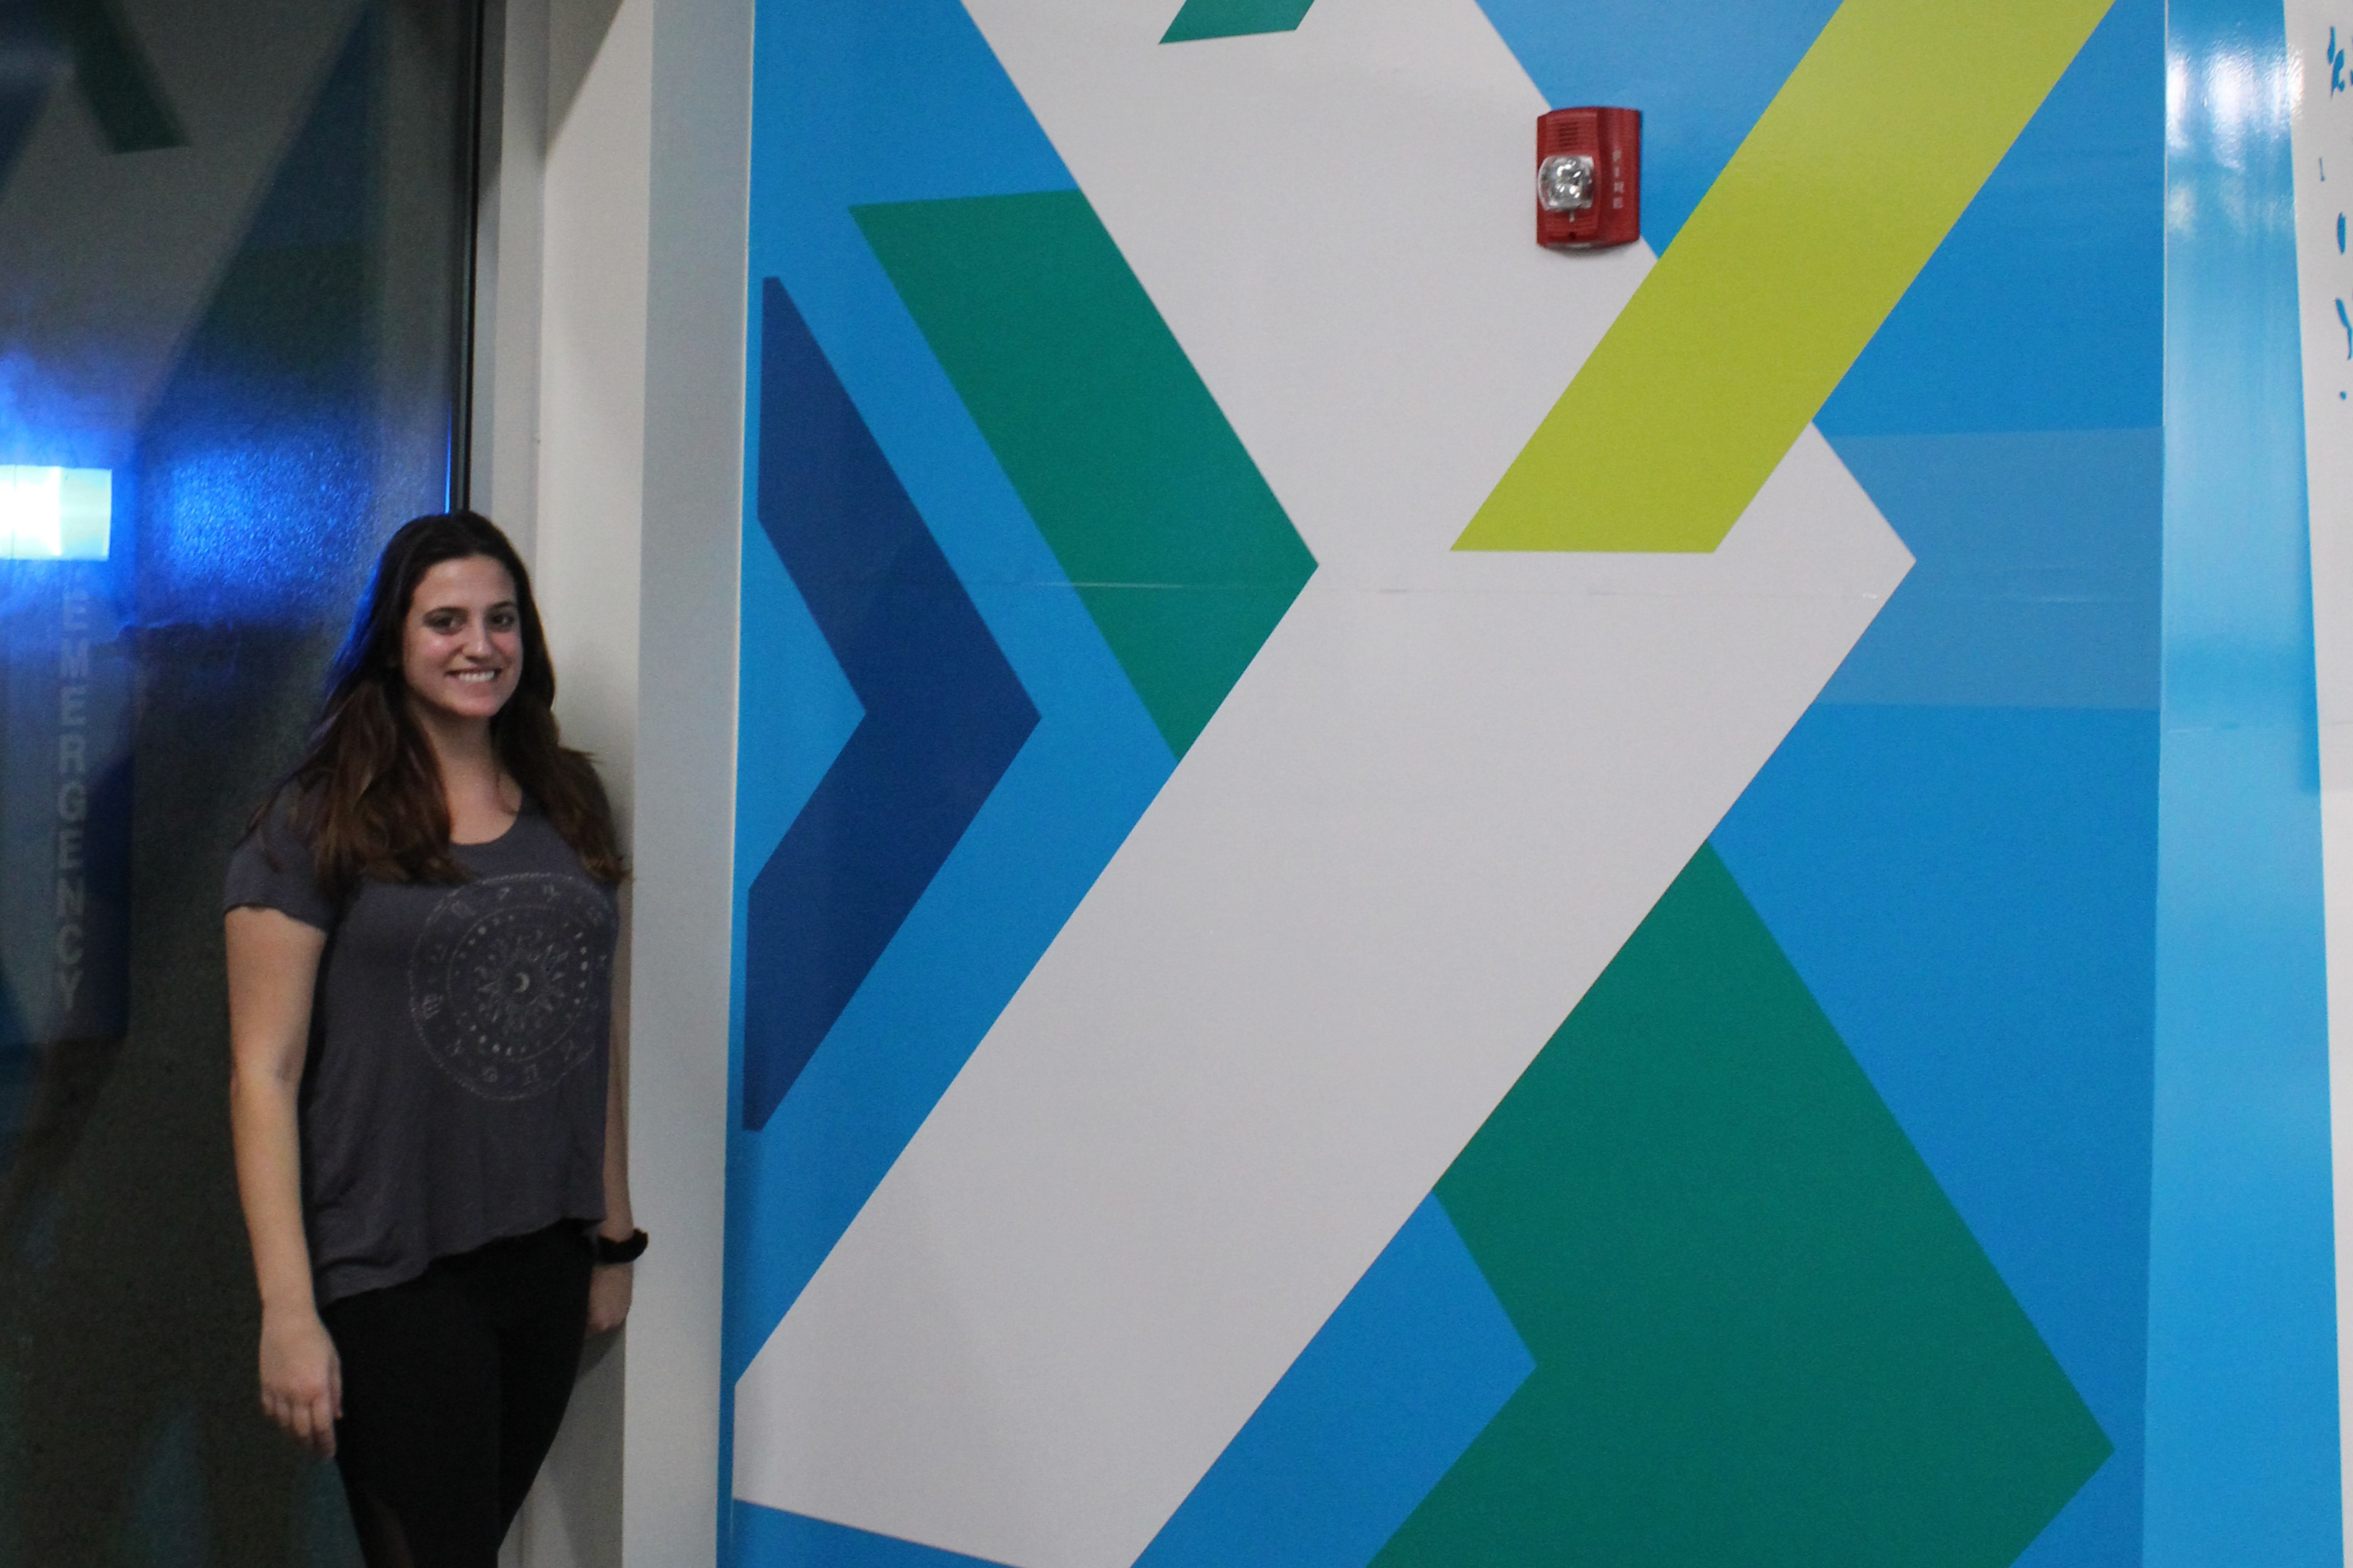 Meet the student who designed The Edge's graphics